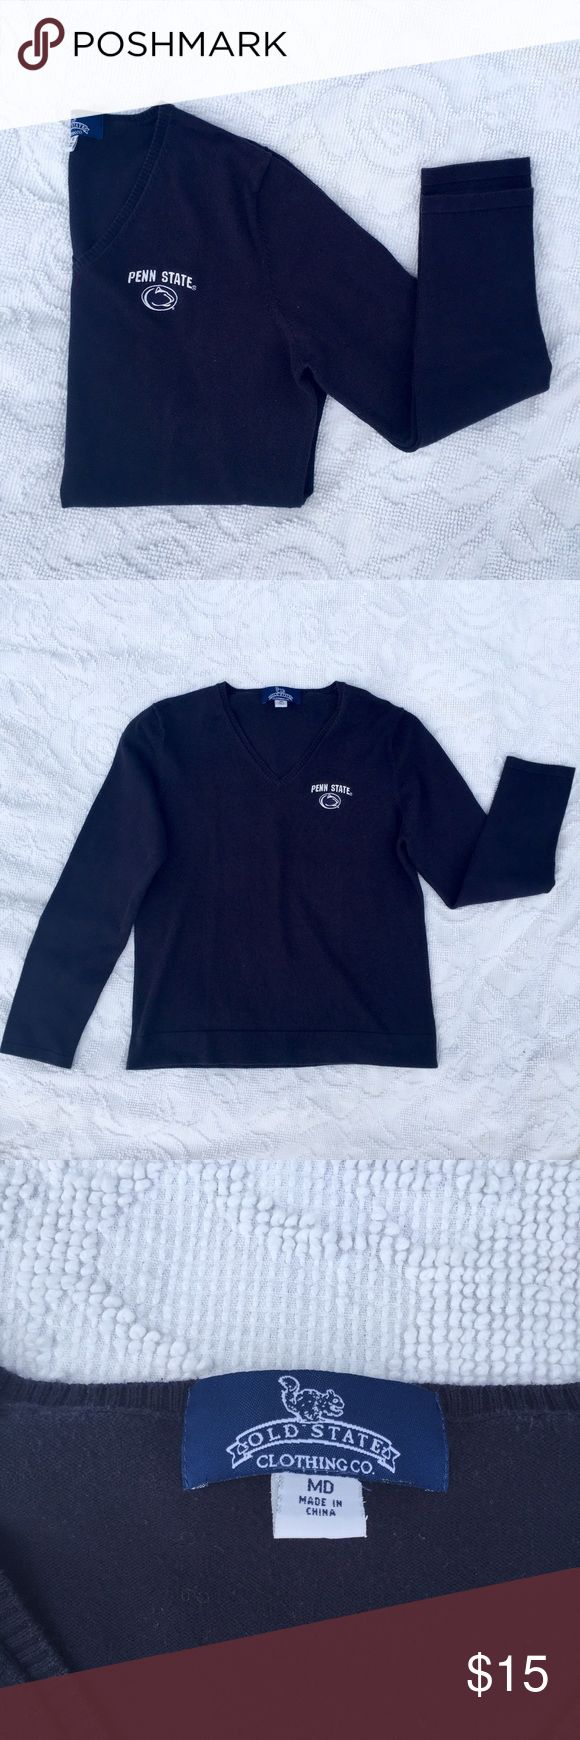 Ladies Penn State V-Neck Lightweight Sweater Penn State V-Neck Long Sleeve Lightweight Sweater in navy with a PSU logo. Slightly faded from wear and some light pilling under armpit area. Perfect for fall tailgates or a cool summer night. 70% Combed Cotton, 30% Nylon. Old State Clothing Co. Sweaters V-Necks